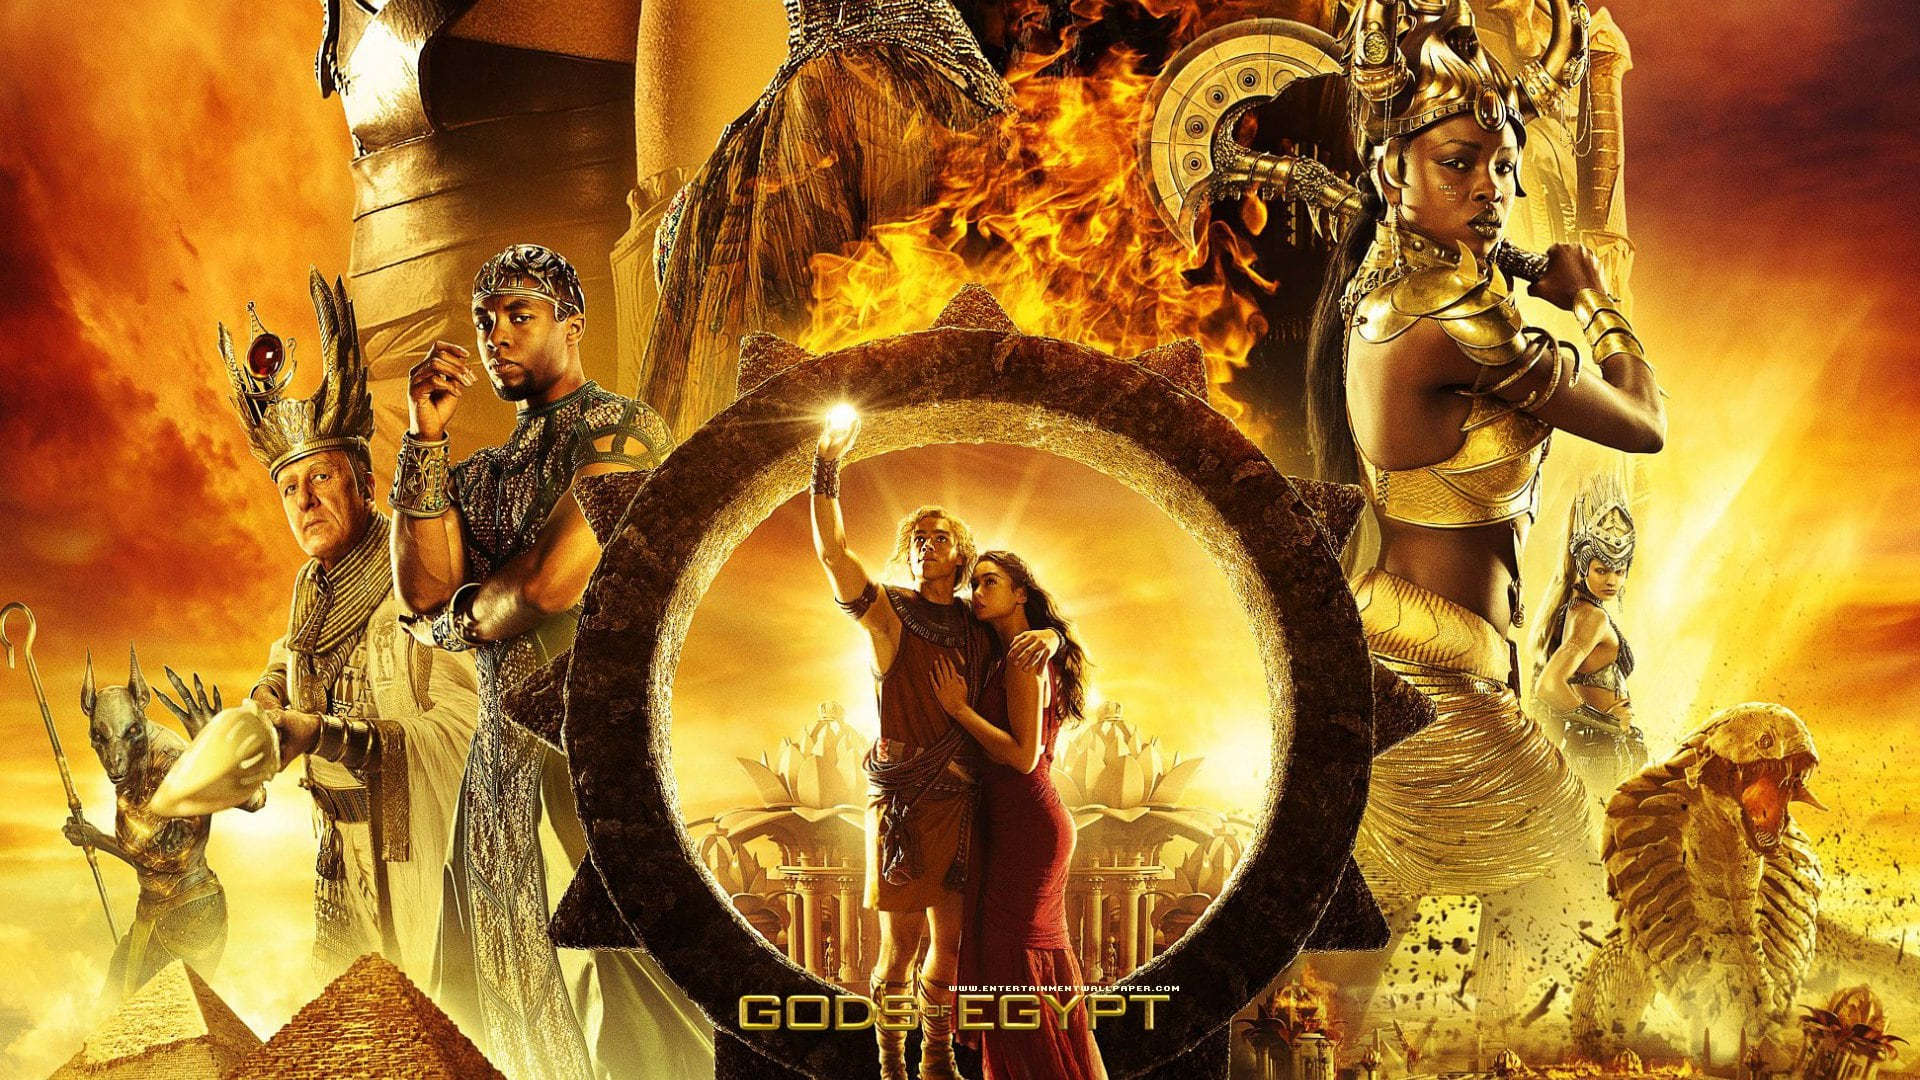 gods of egypt hd desktop wallpapers | 7wallpapers